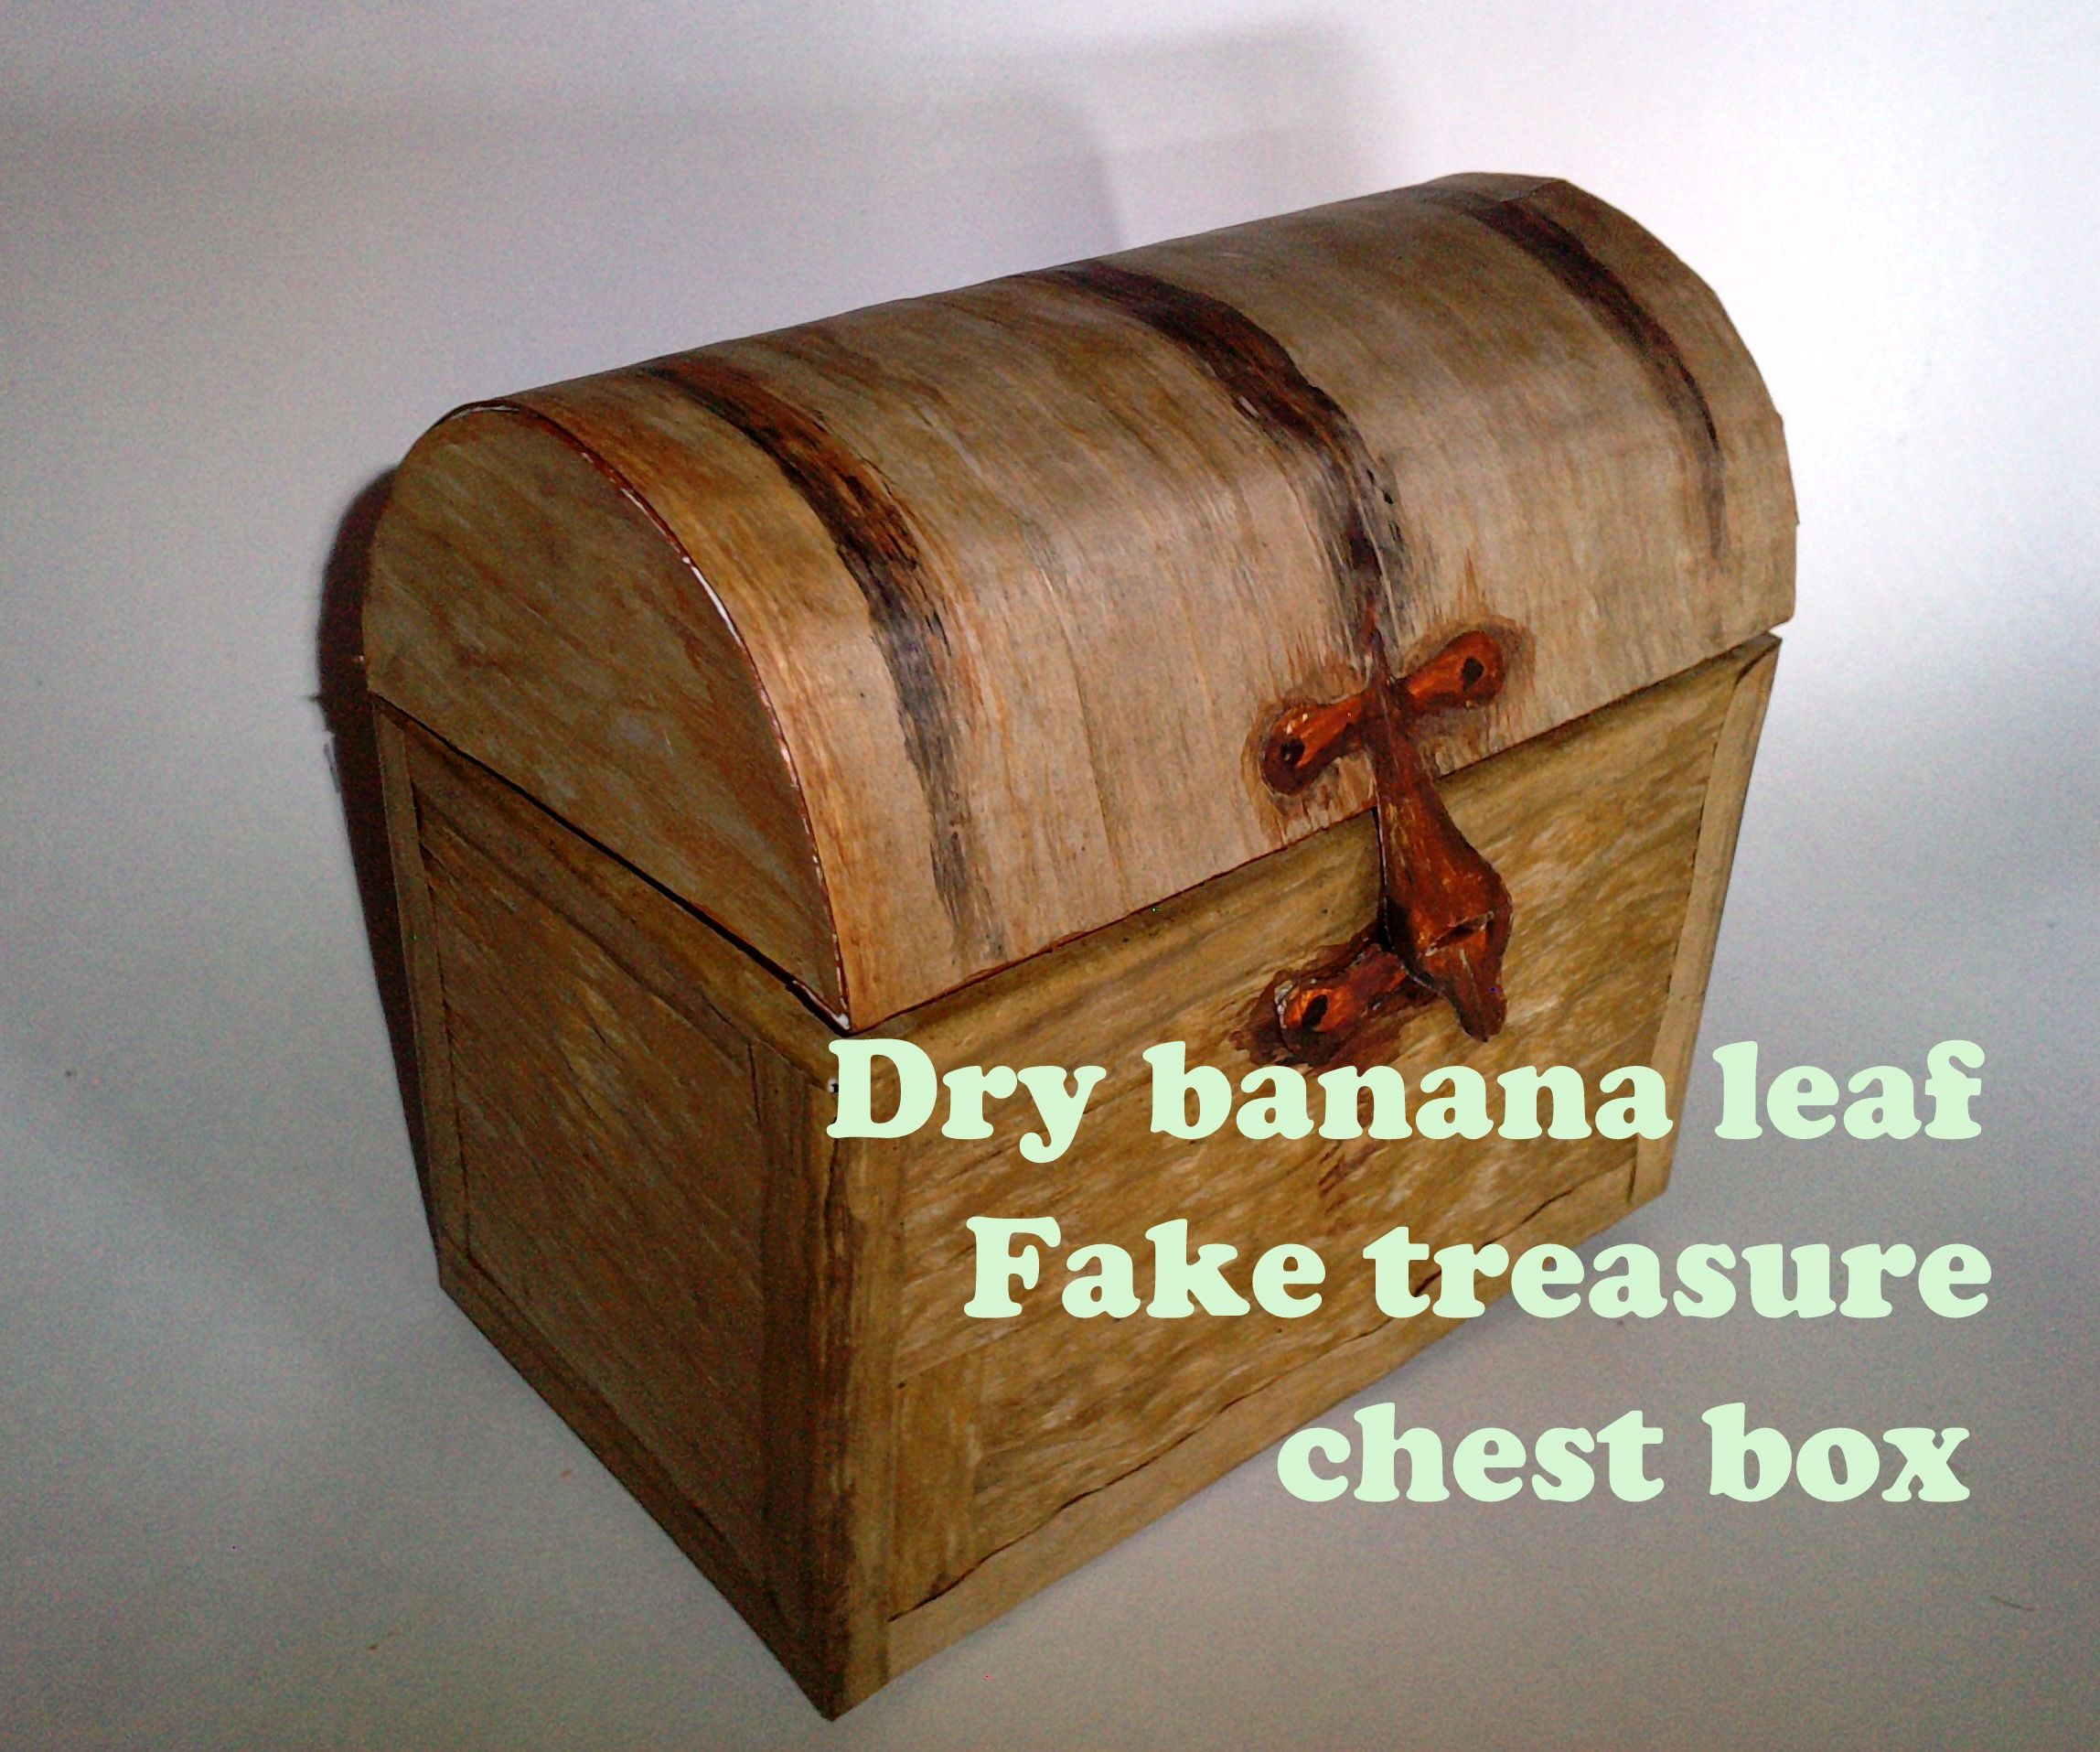 Cheap treasure chest box (REAL wood LOOK)